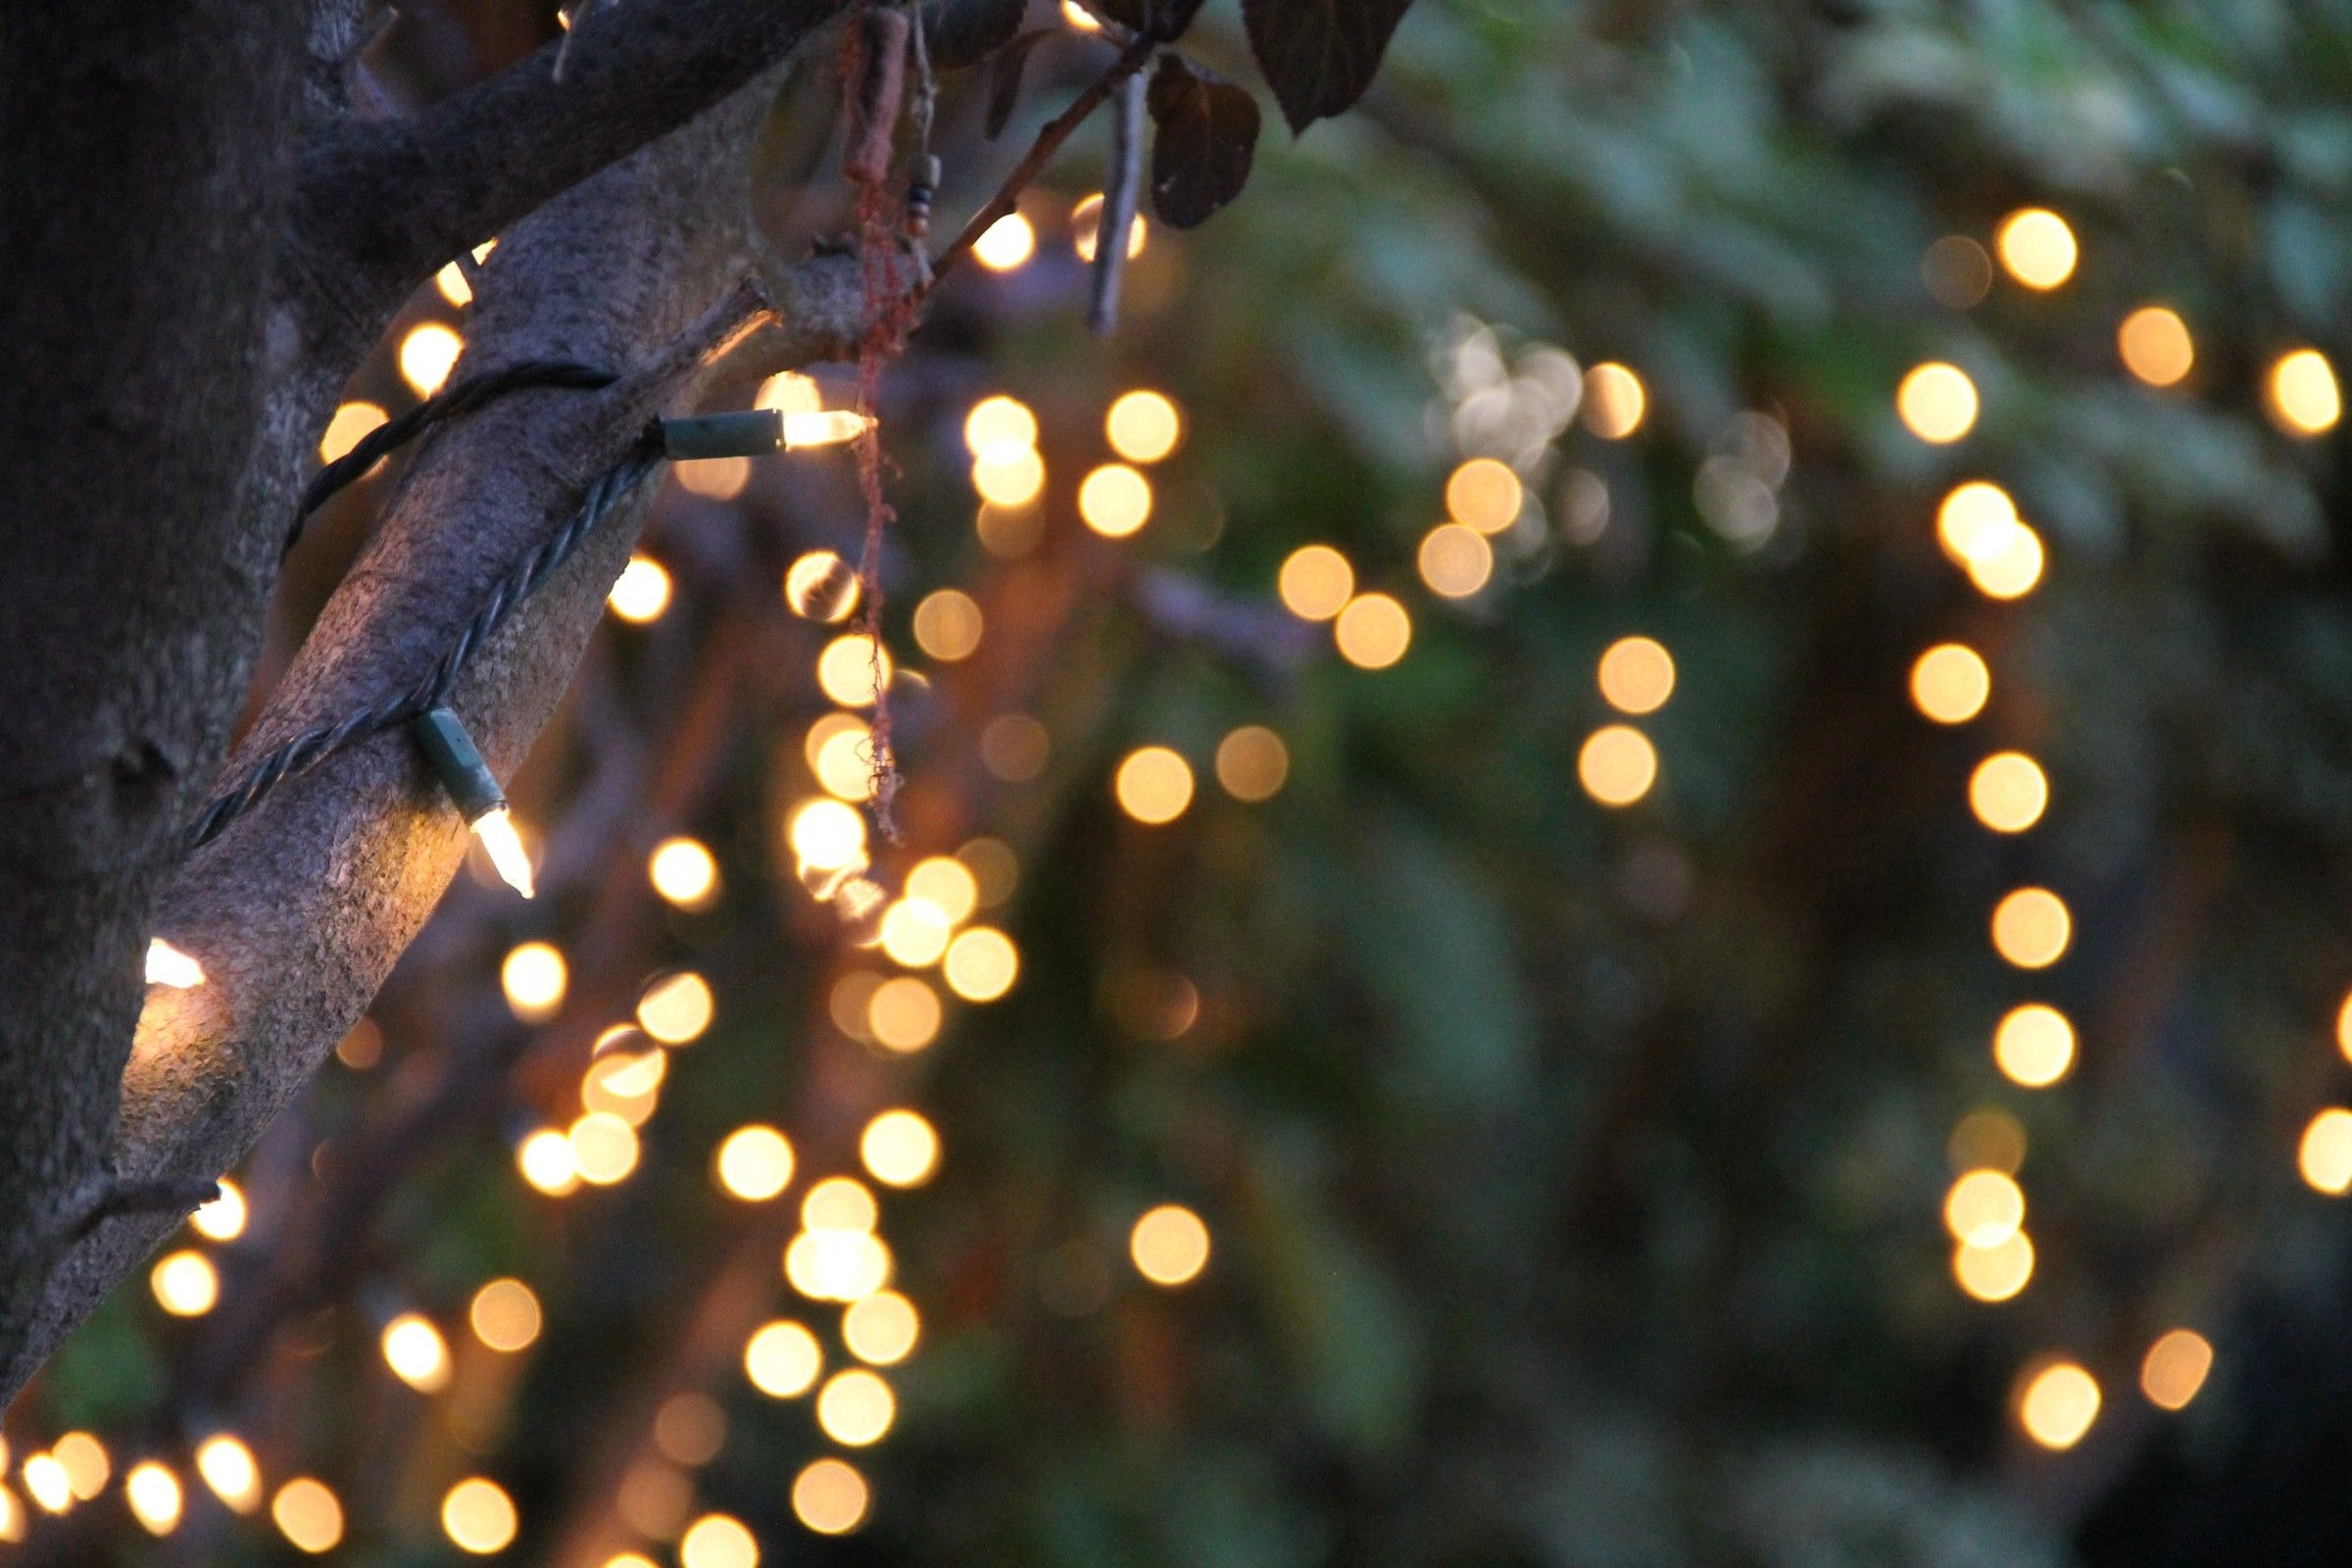 Outdoor Hanging Lights – Google Search | Pococello Mood Board In Outdoor Hanging Grape Lights (View 12 of 15)